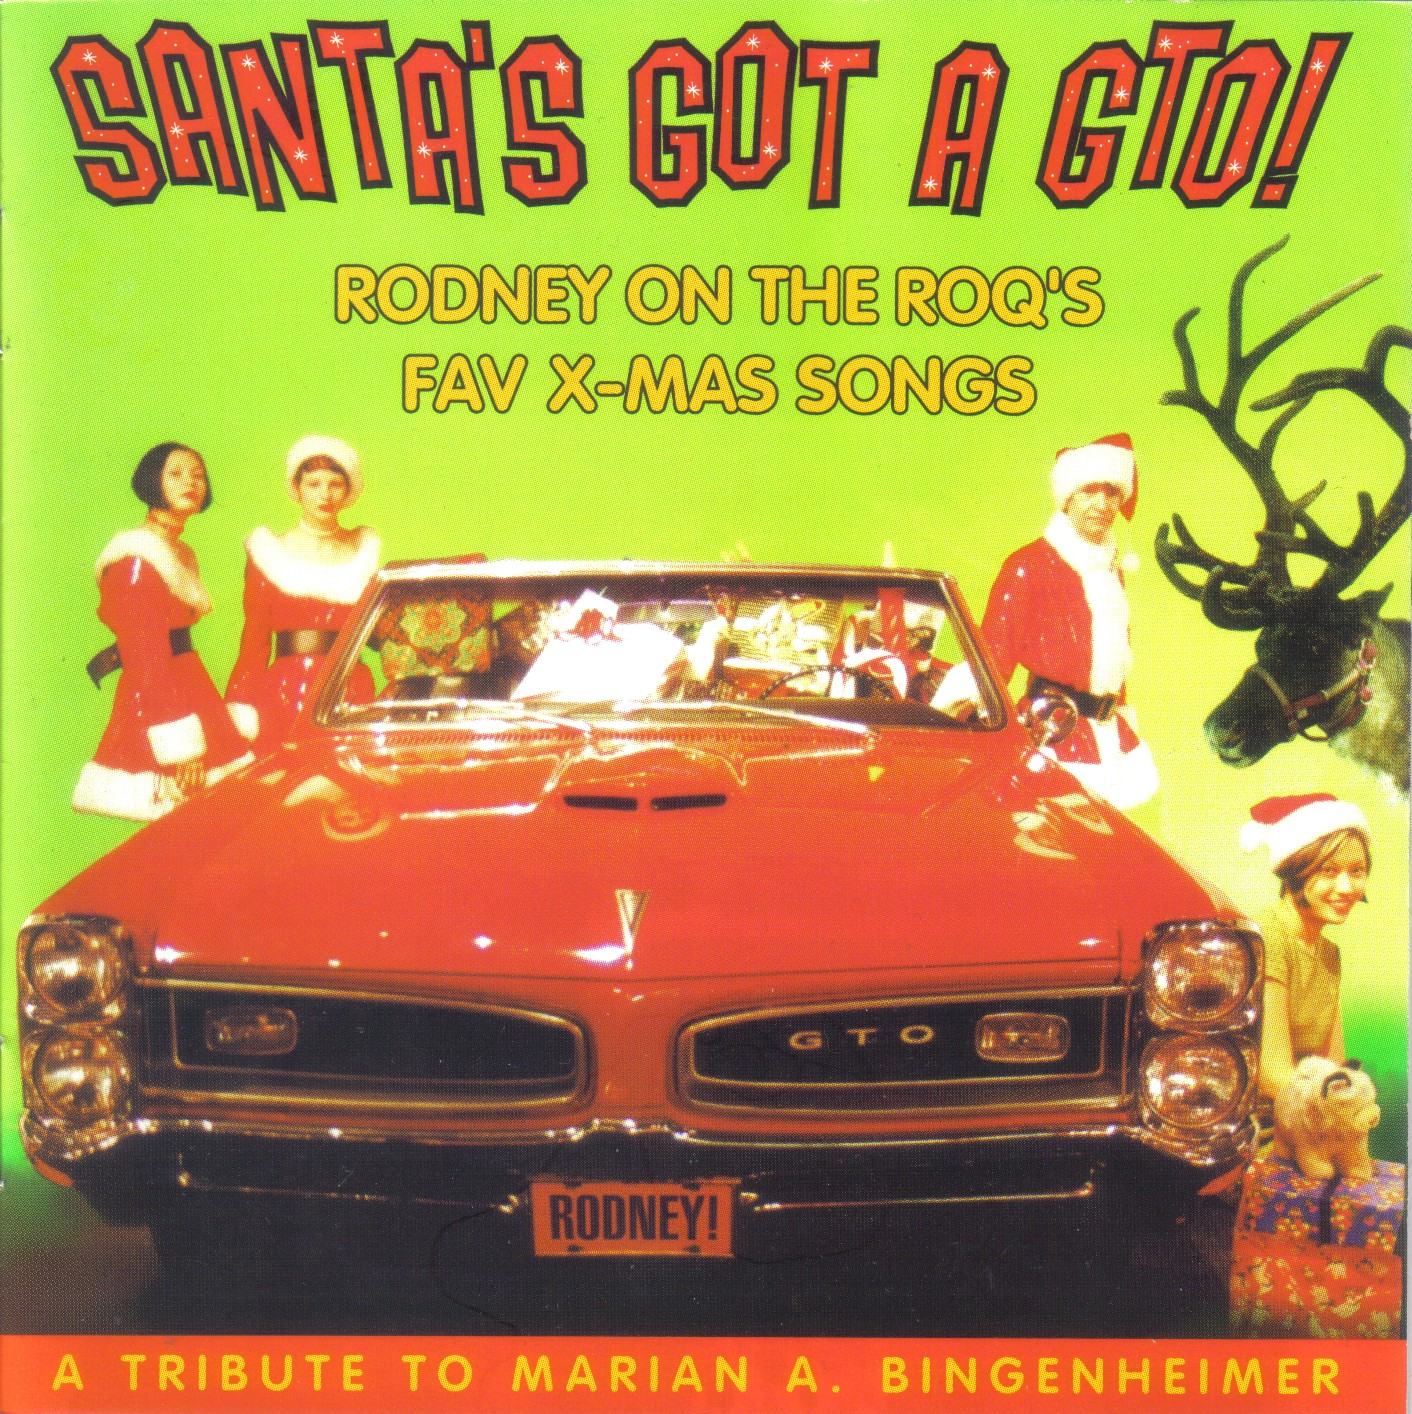 roots and traces: spurensicherung: SANTA'S GOT A GTO! rodney